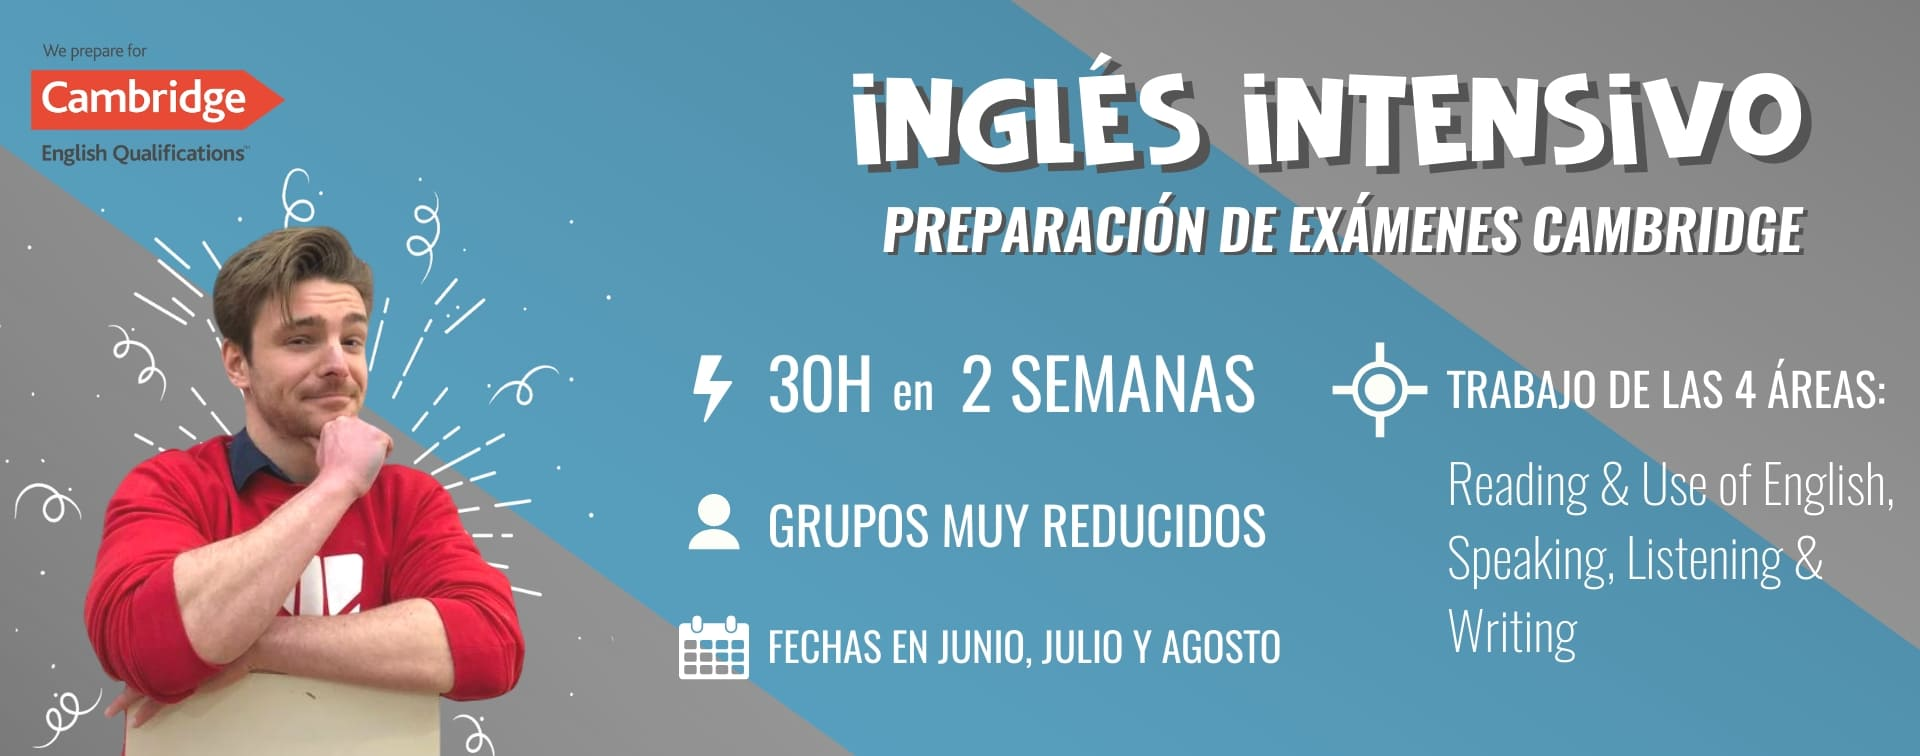 intensivo_ingles_examenes